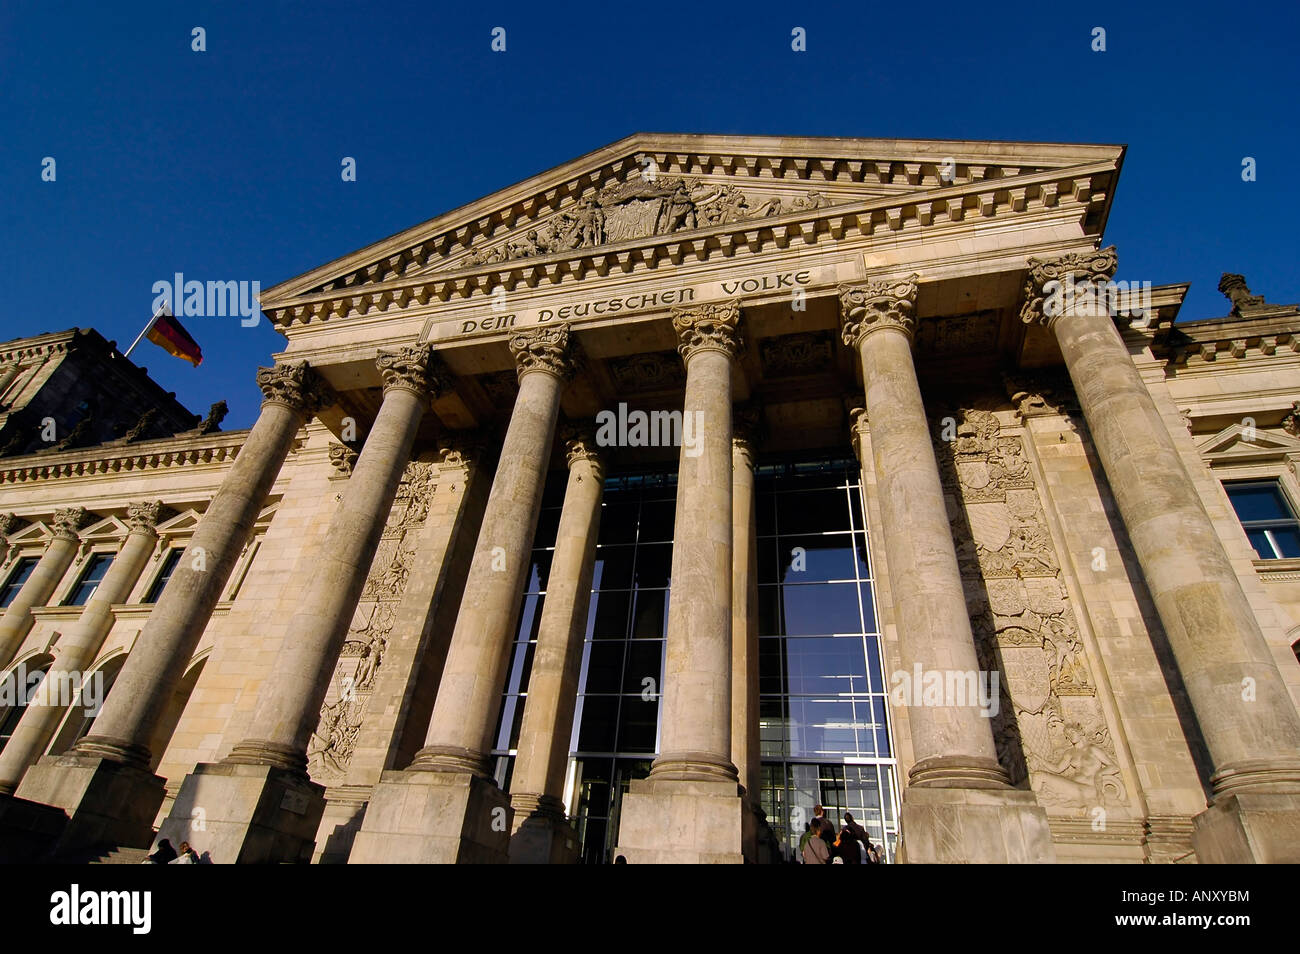 Entrance of the Reichstag building in Berlin, Germany. This building hosts the German parliament and is a symbol - Stock Image